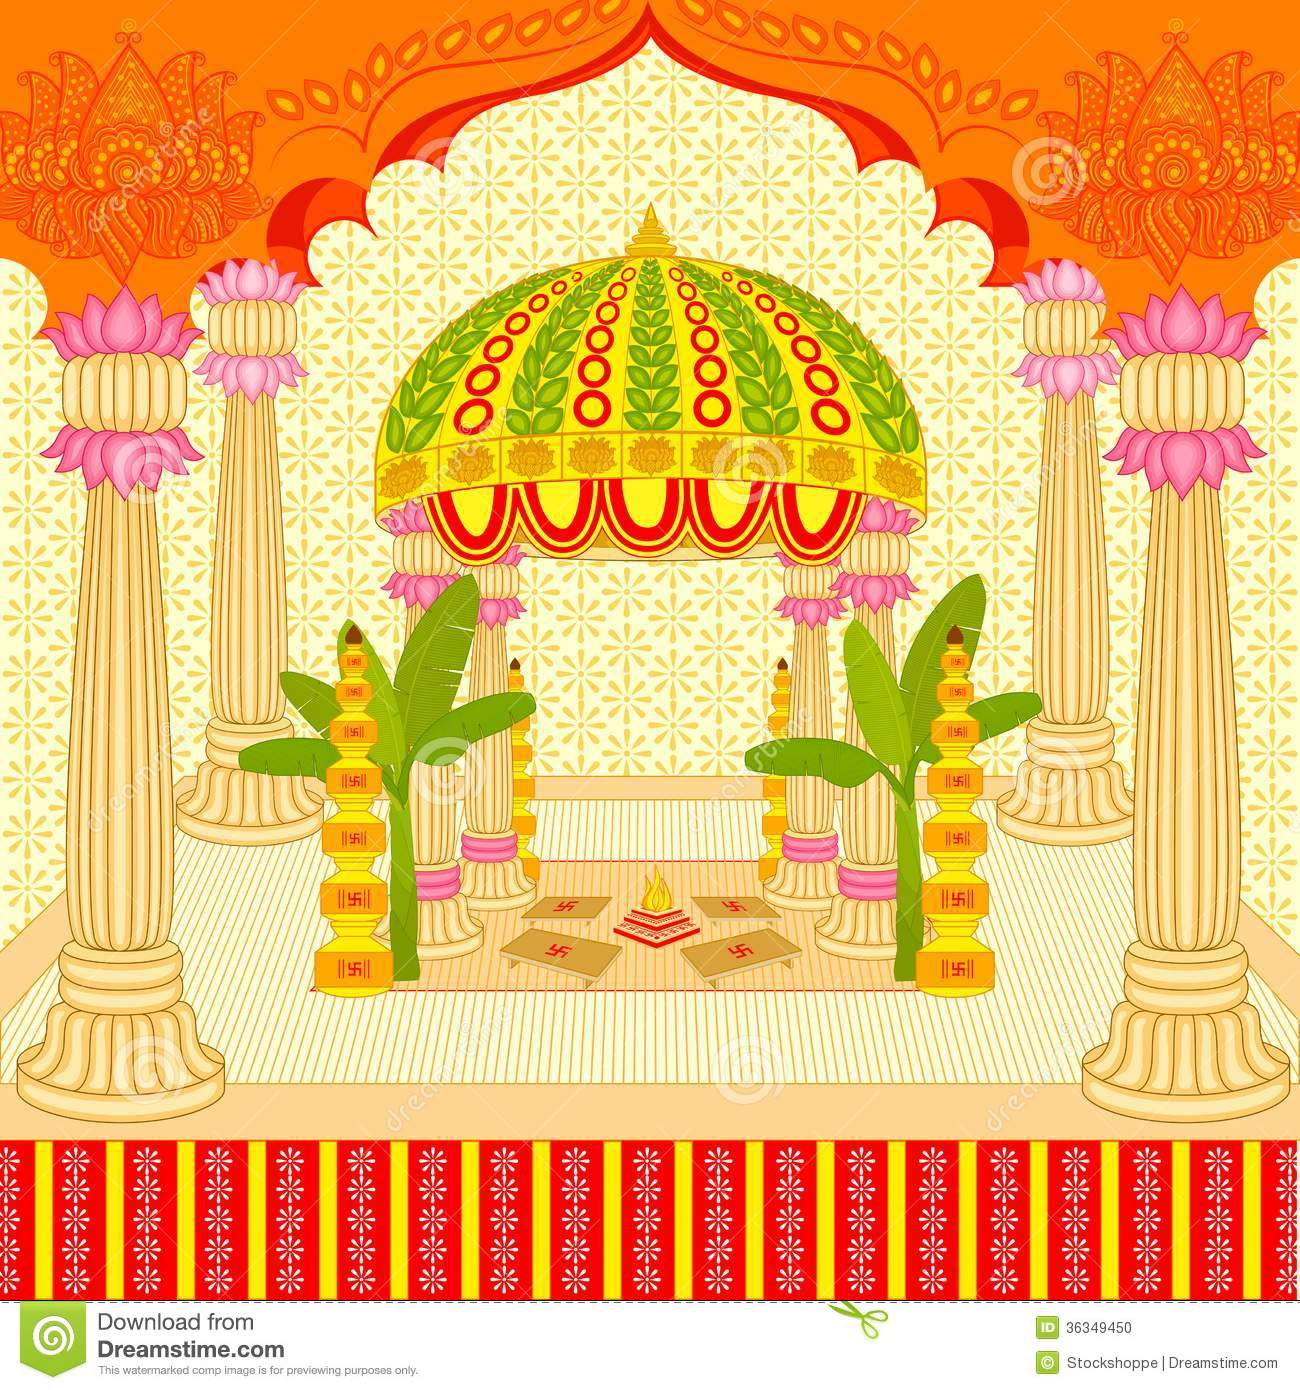 Indian wedding clipart vector free download 3 » Clipart Station.